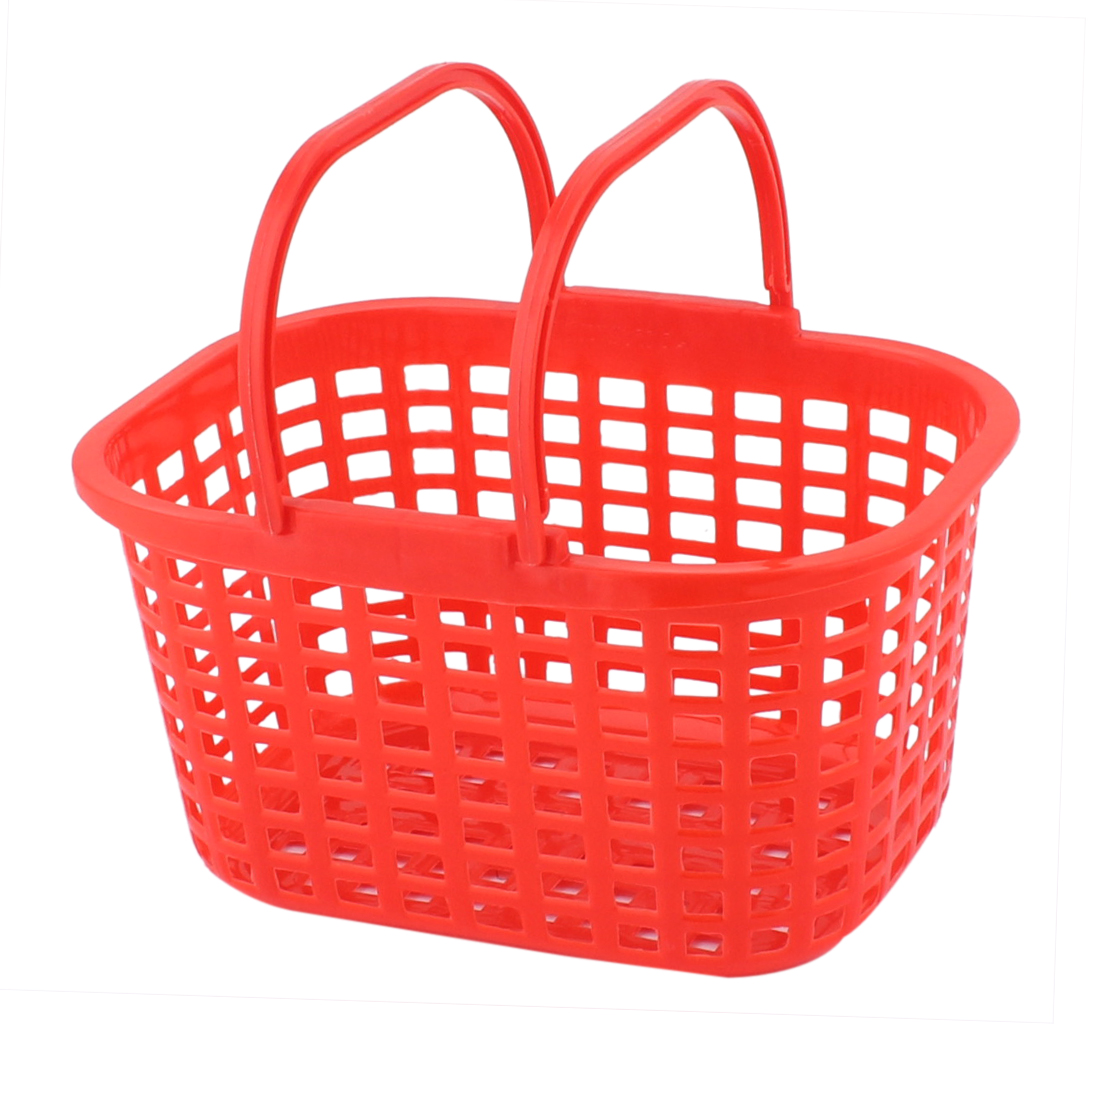 Household Washroom Bathroom Plastic Rectangle Design Portable Storage Basket Red